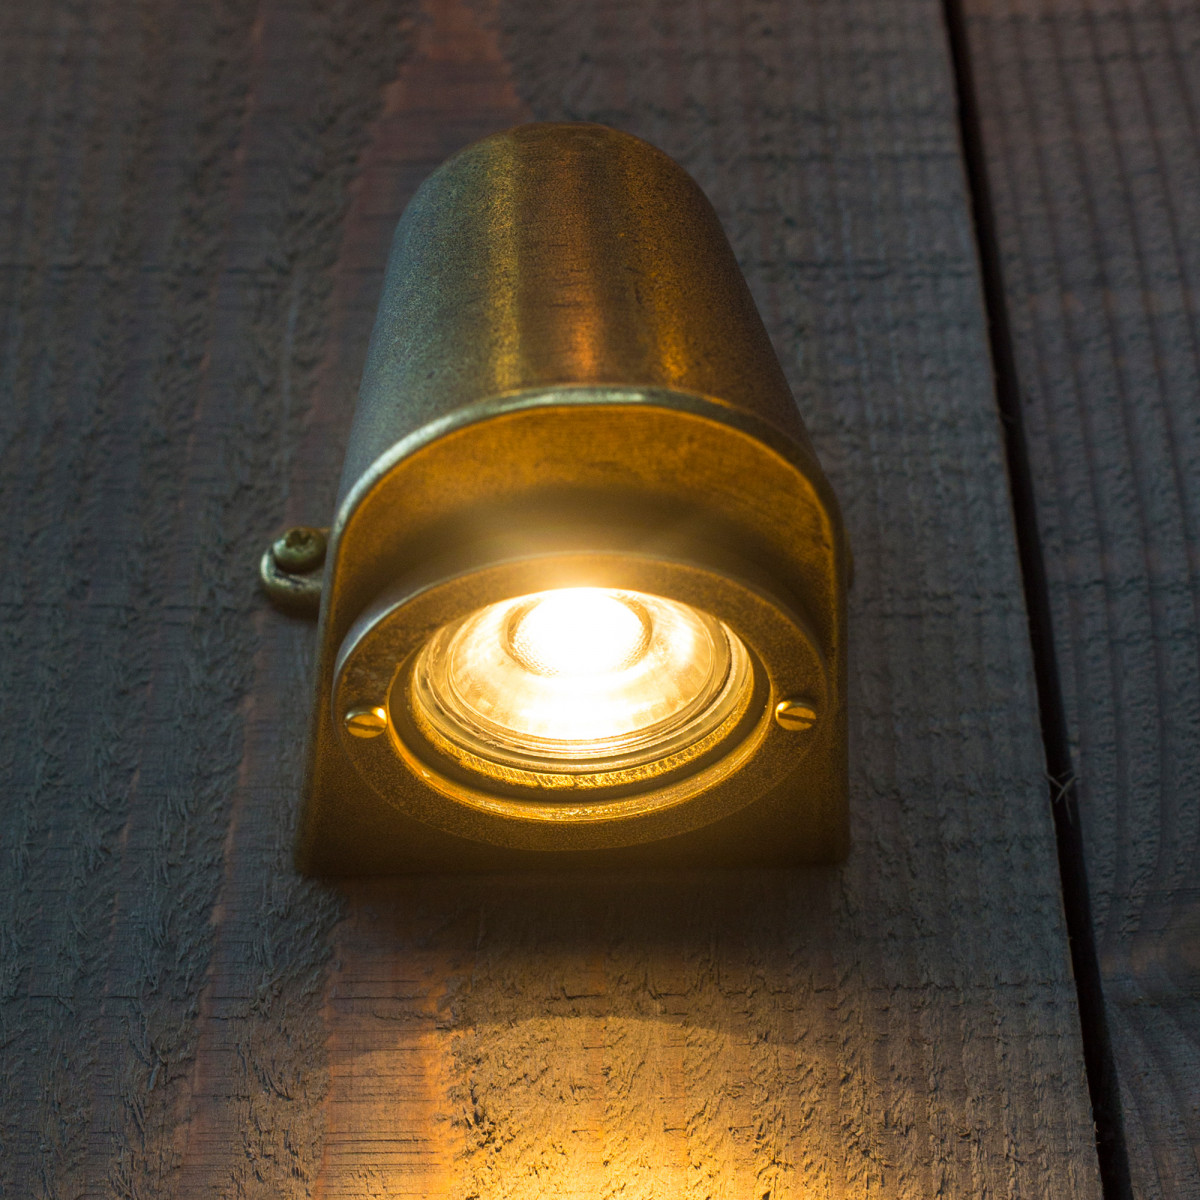 Buitenverlichting buitenlamp Offshore, bronzen downlighter, massief brons, wandspot, slijtvast en onderhoudsvrij, KS Verlichting